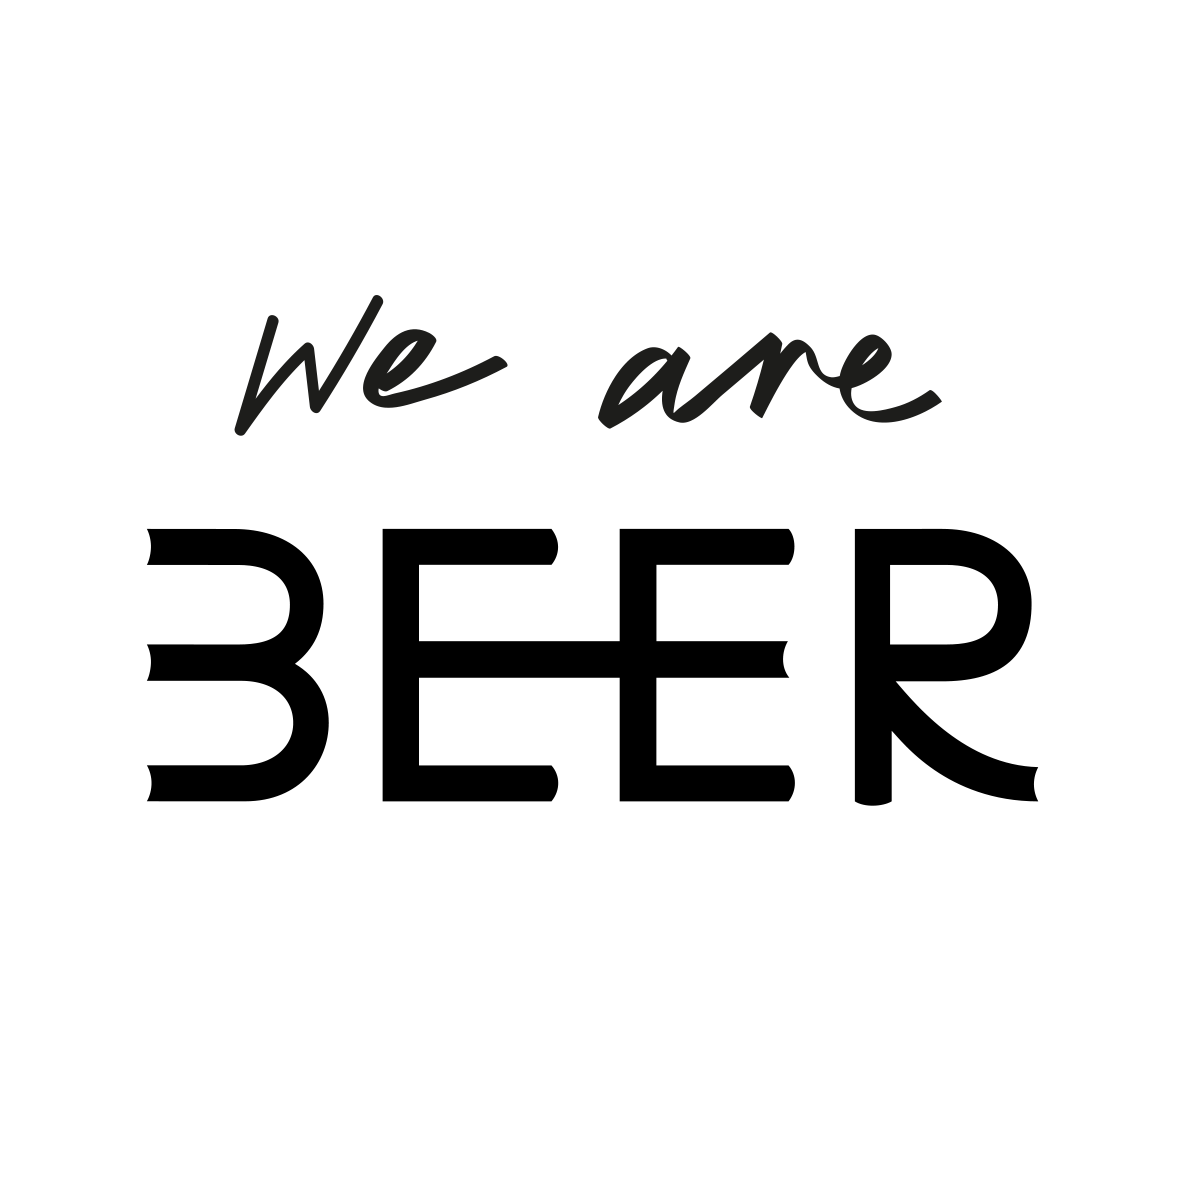 We Are Beer